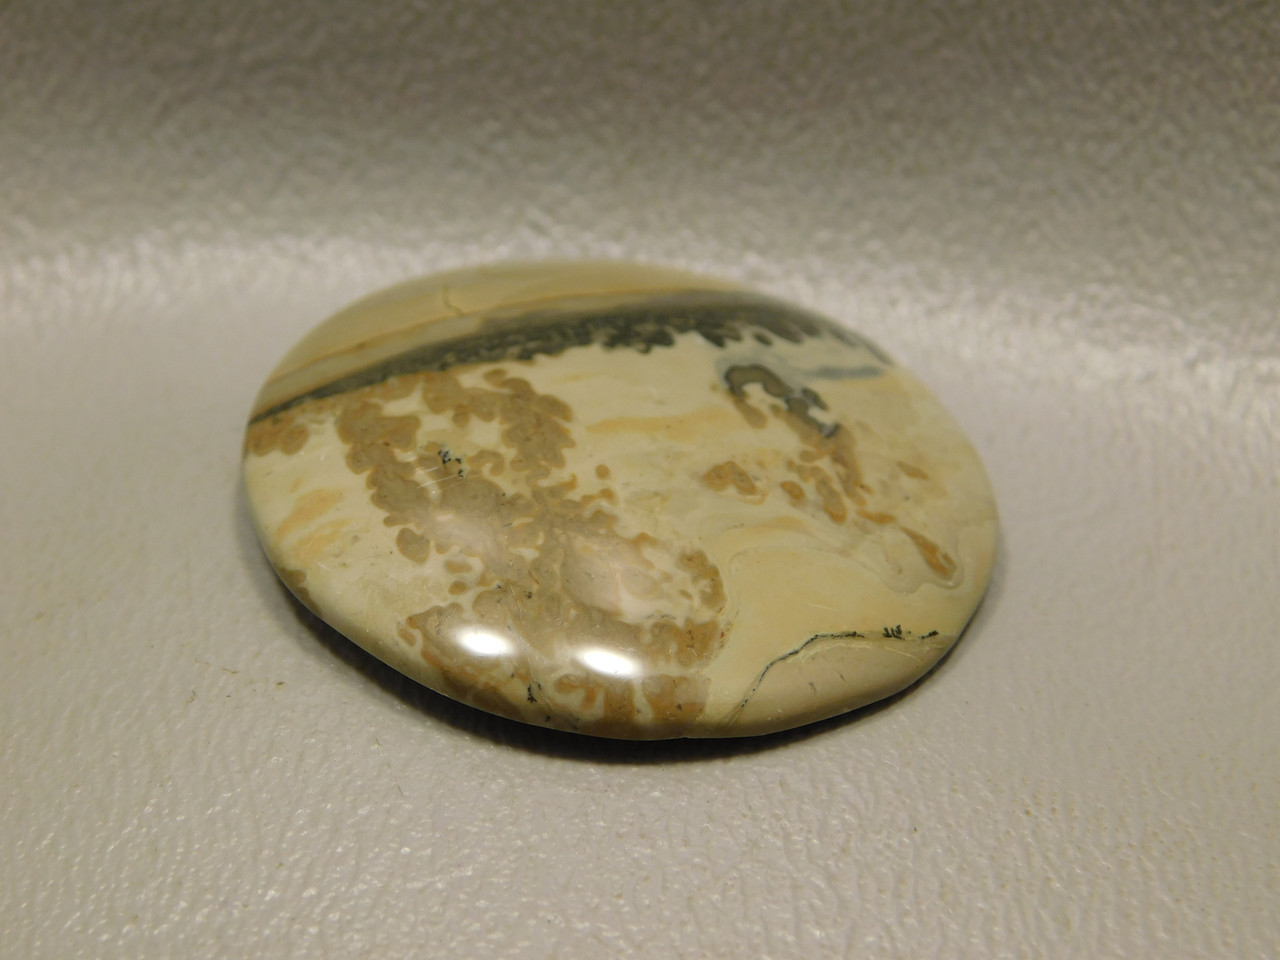 Cotham Marble Fossil Stone Cabochon Jewelry Making Supplies #19